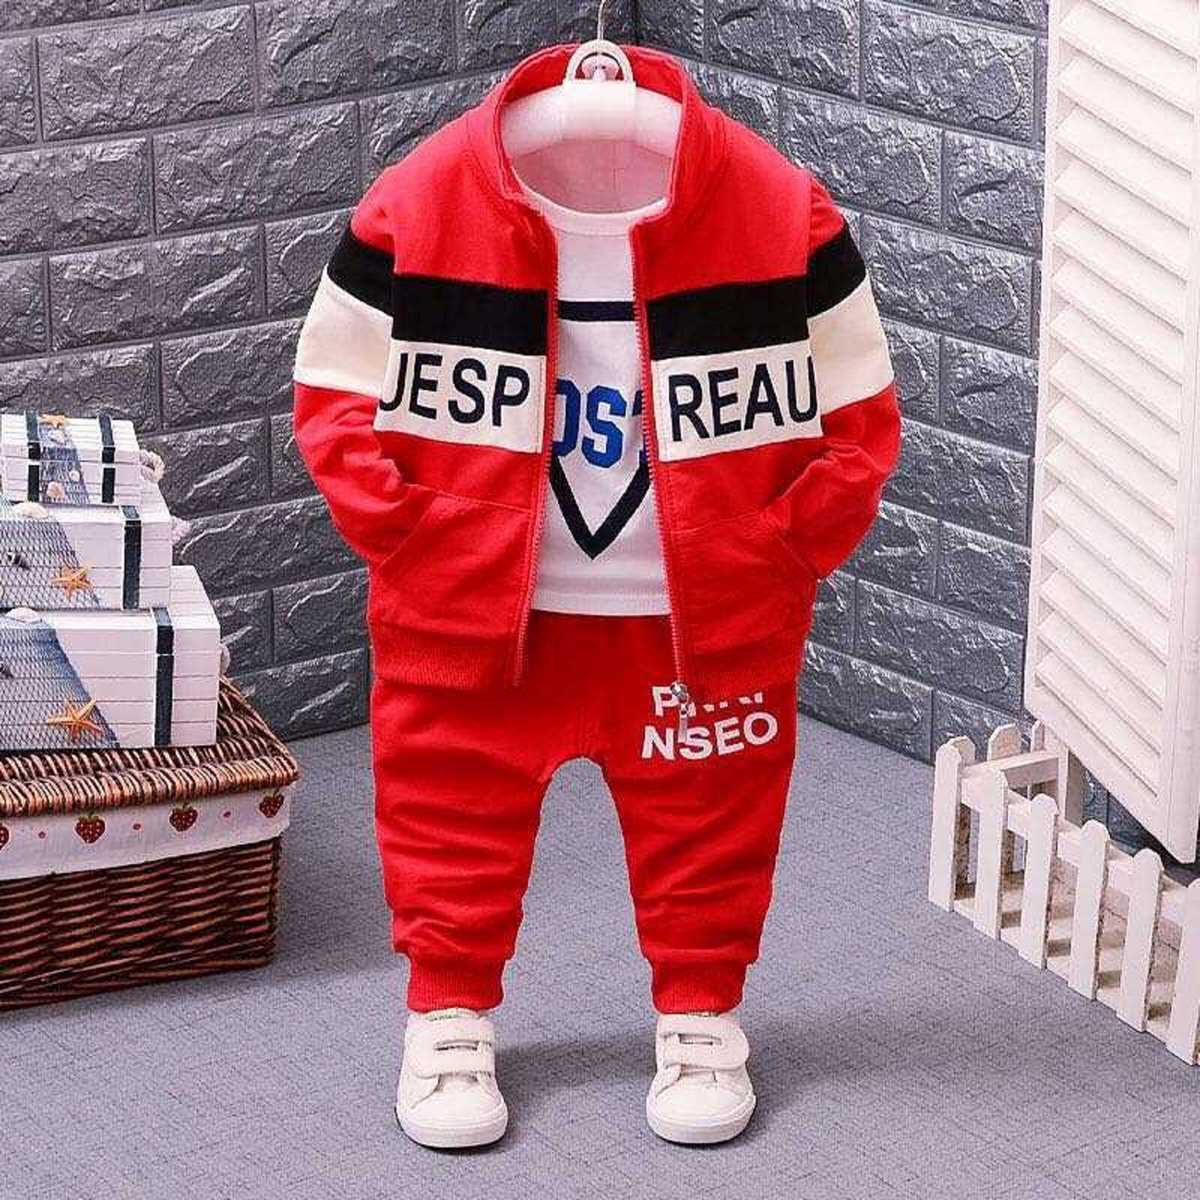 6-12 Month 3 PCS Jacket for Baba - Lil'Champs